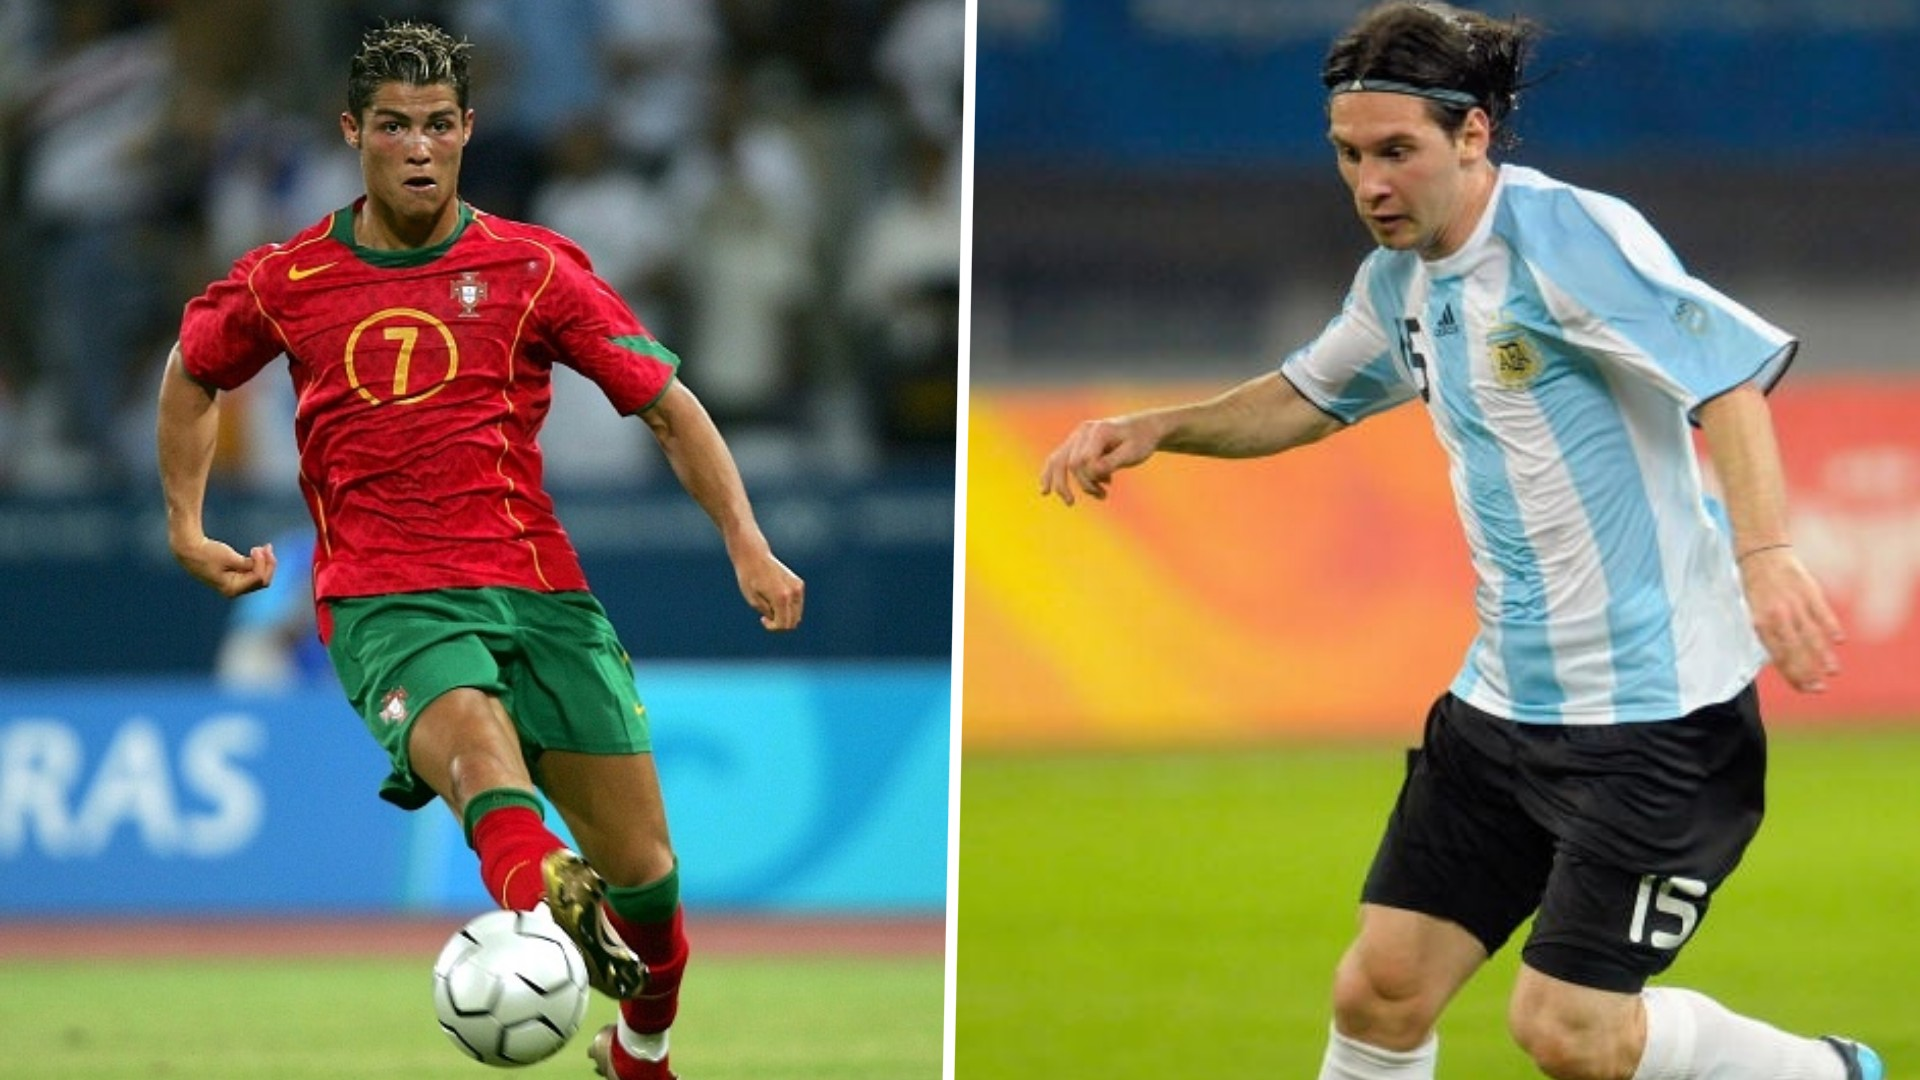 Ronaldo vs Messi at Olympics: How have the 2 legends performed at the Olympic games?